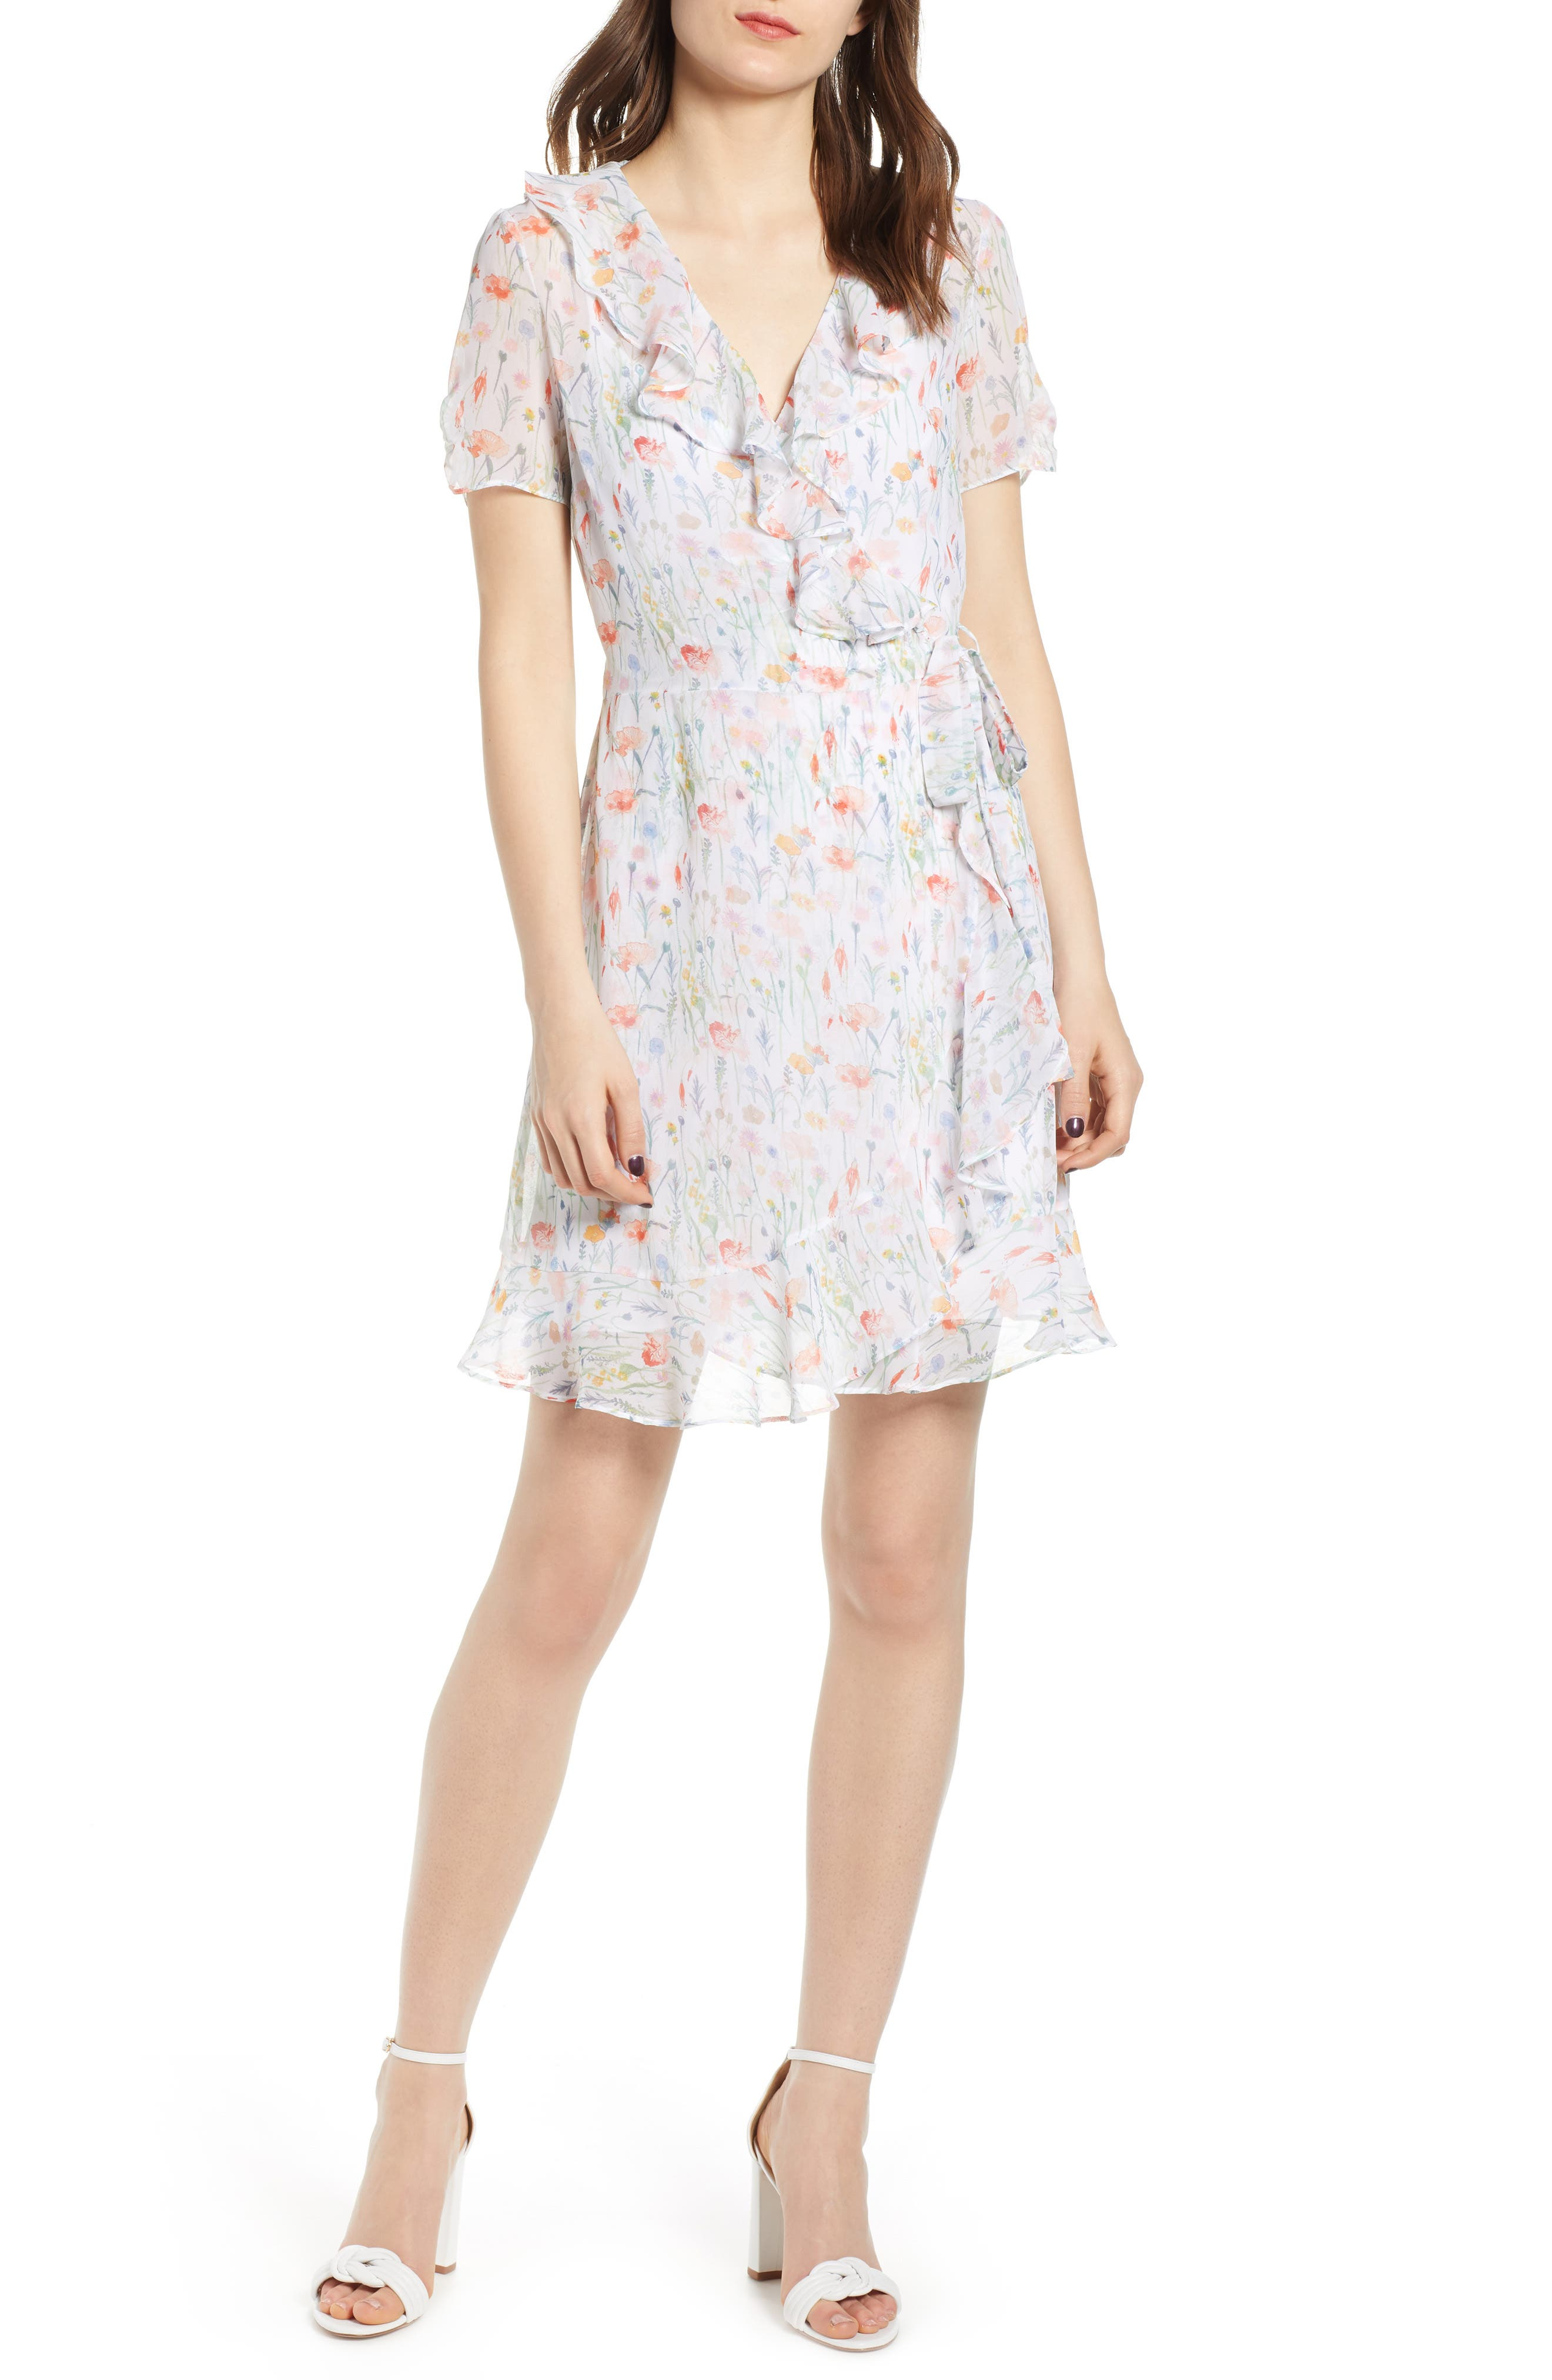 Bailey 44 In The Clouds Floral Ruffle Wrap Dress, White